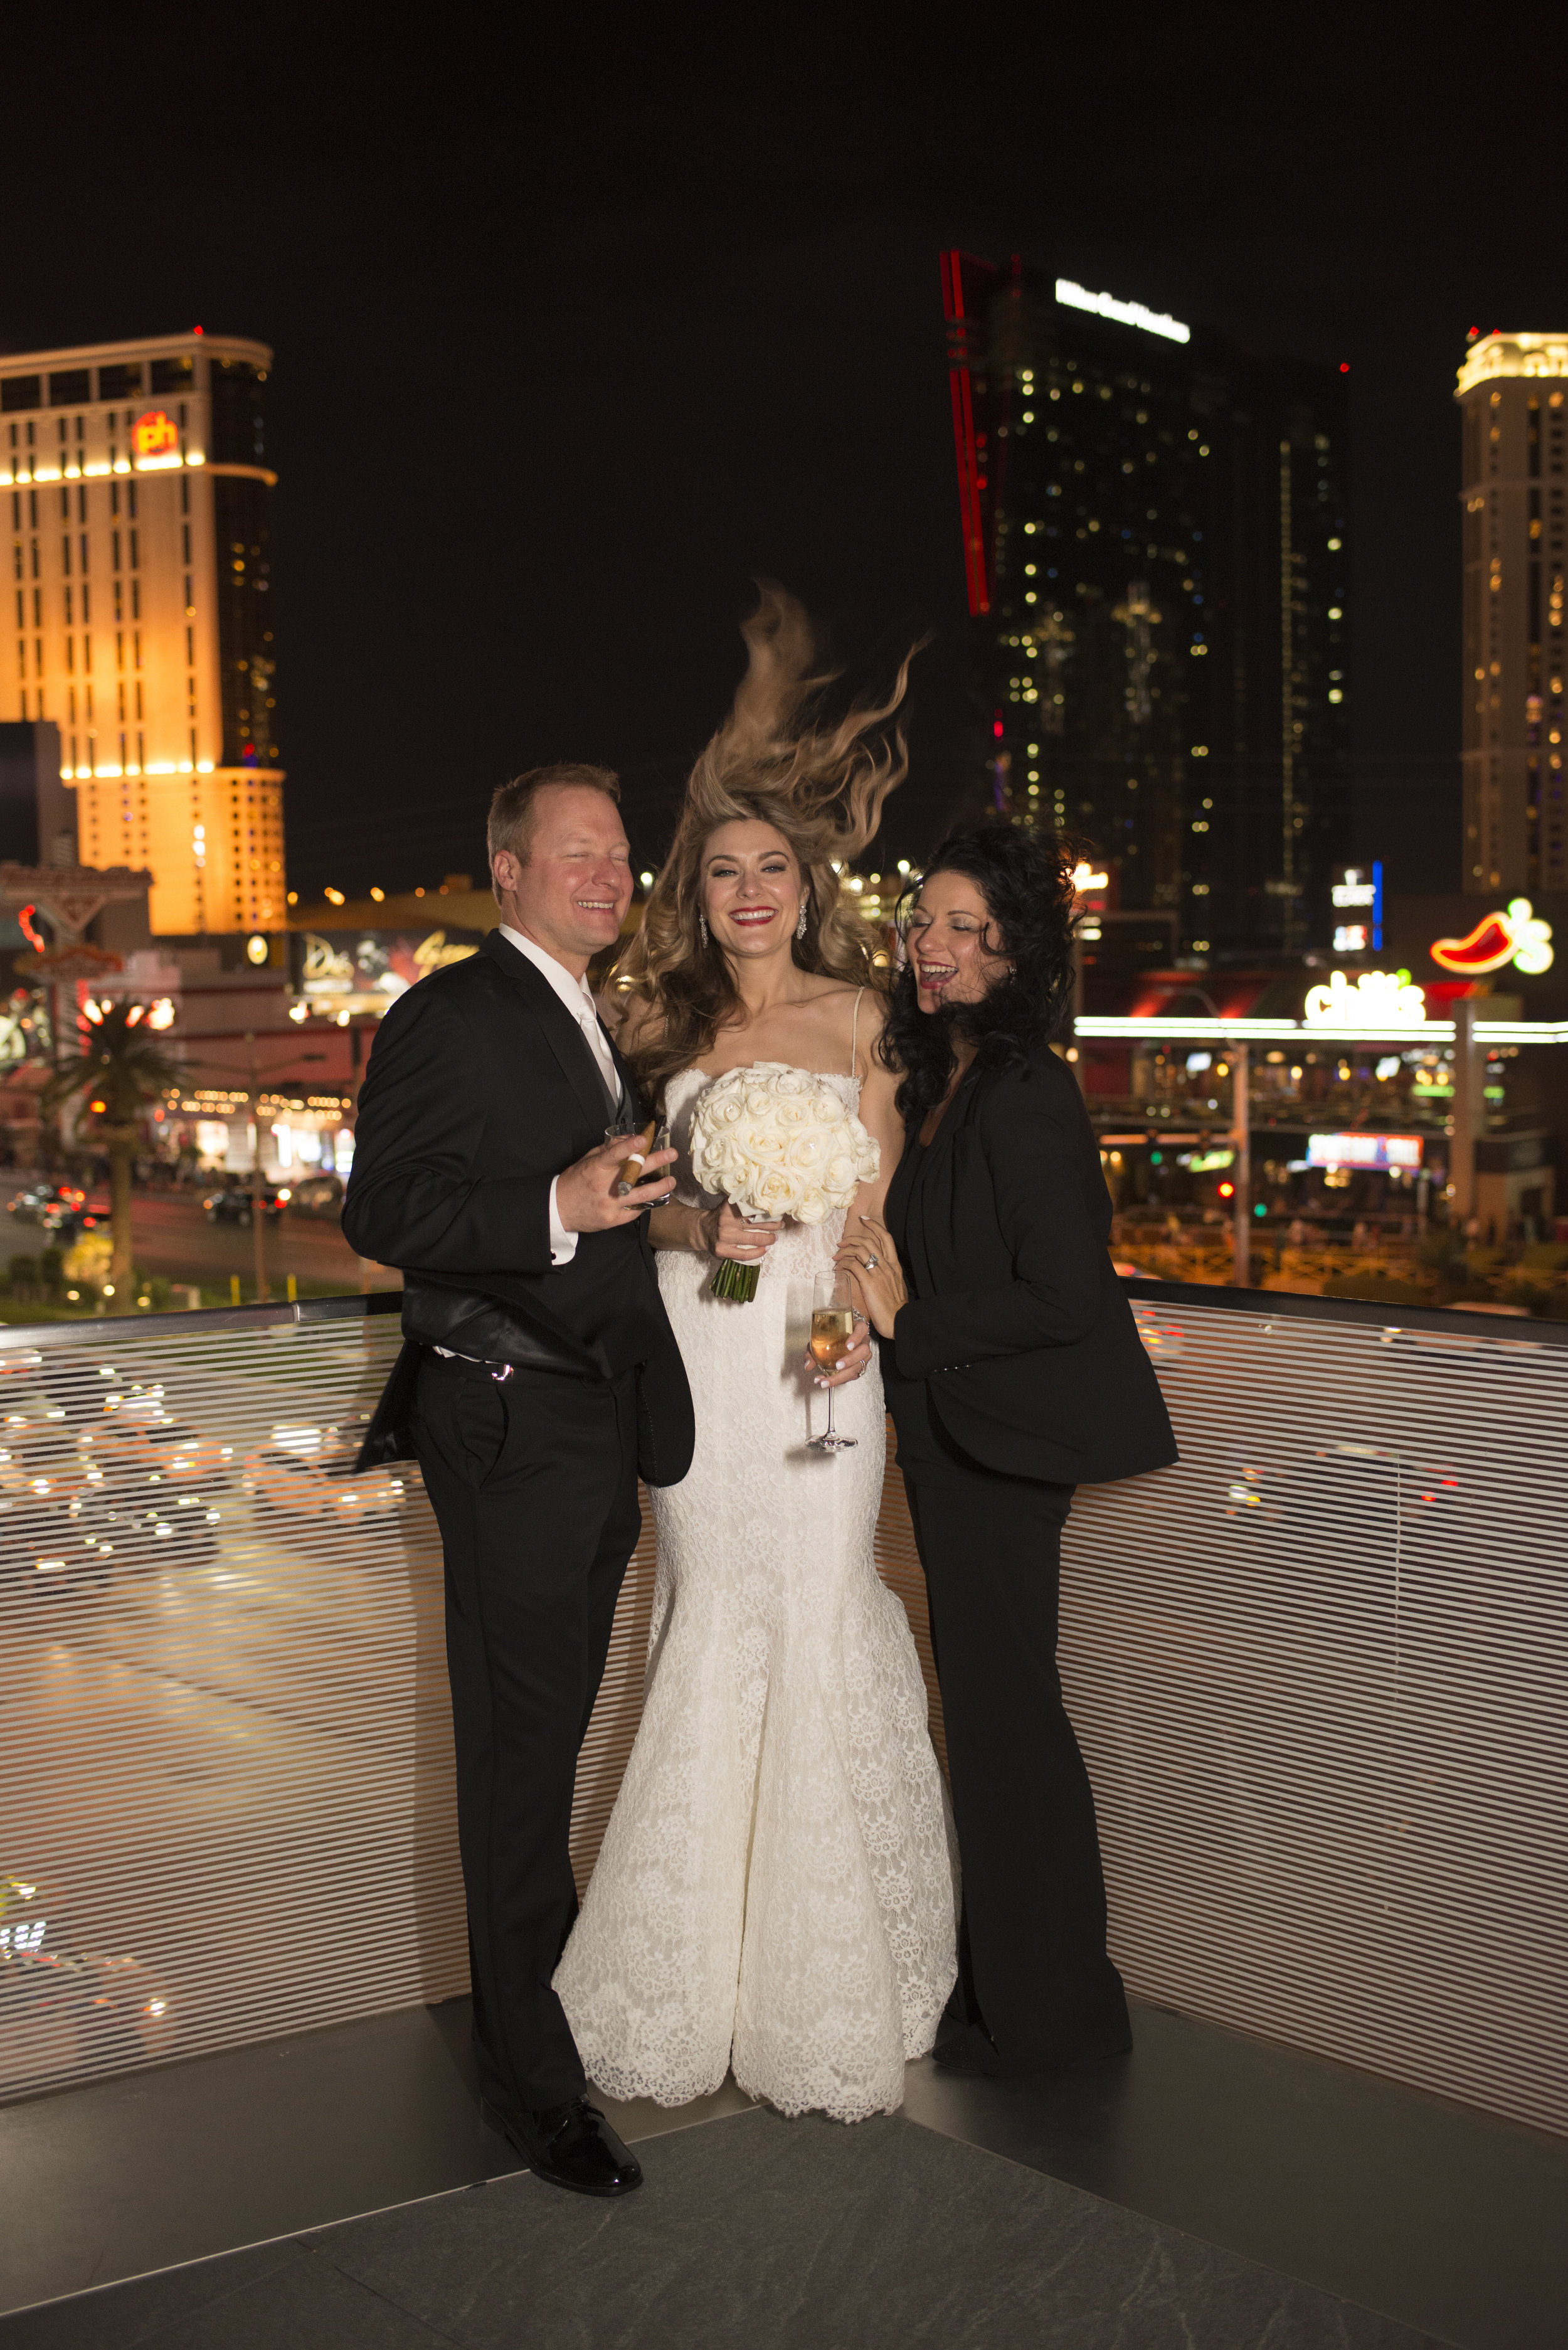 Windy Wedding Photo with  Las V  egas   Wedding Planner Andrea Eppolito  .   Image by AltF.